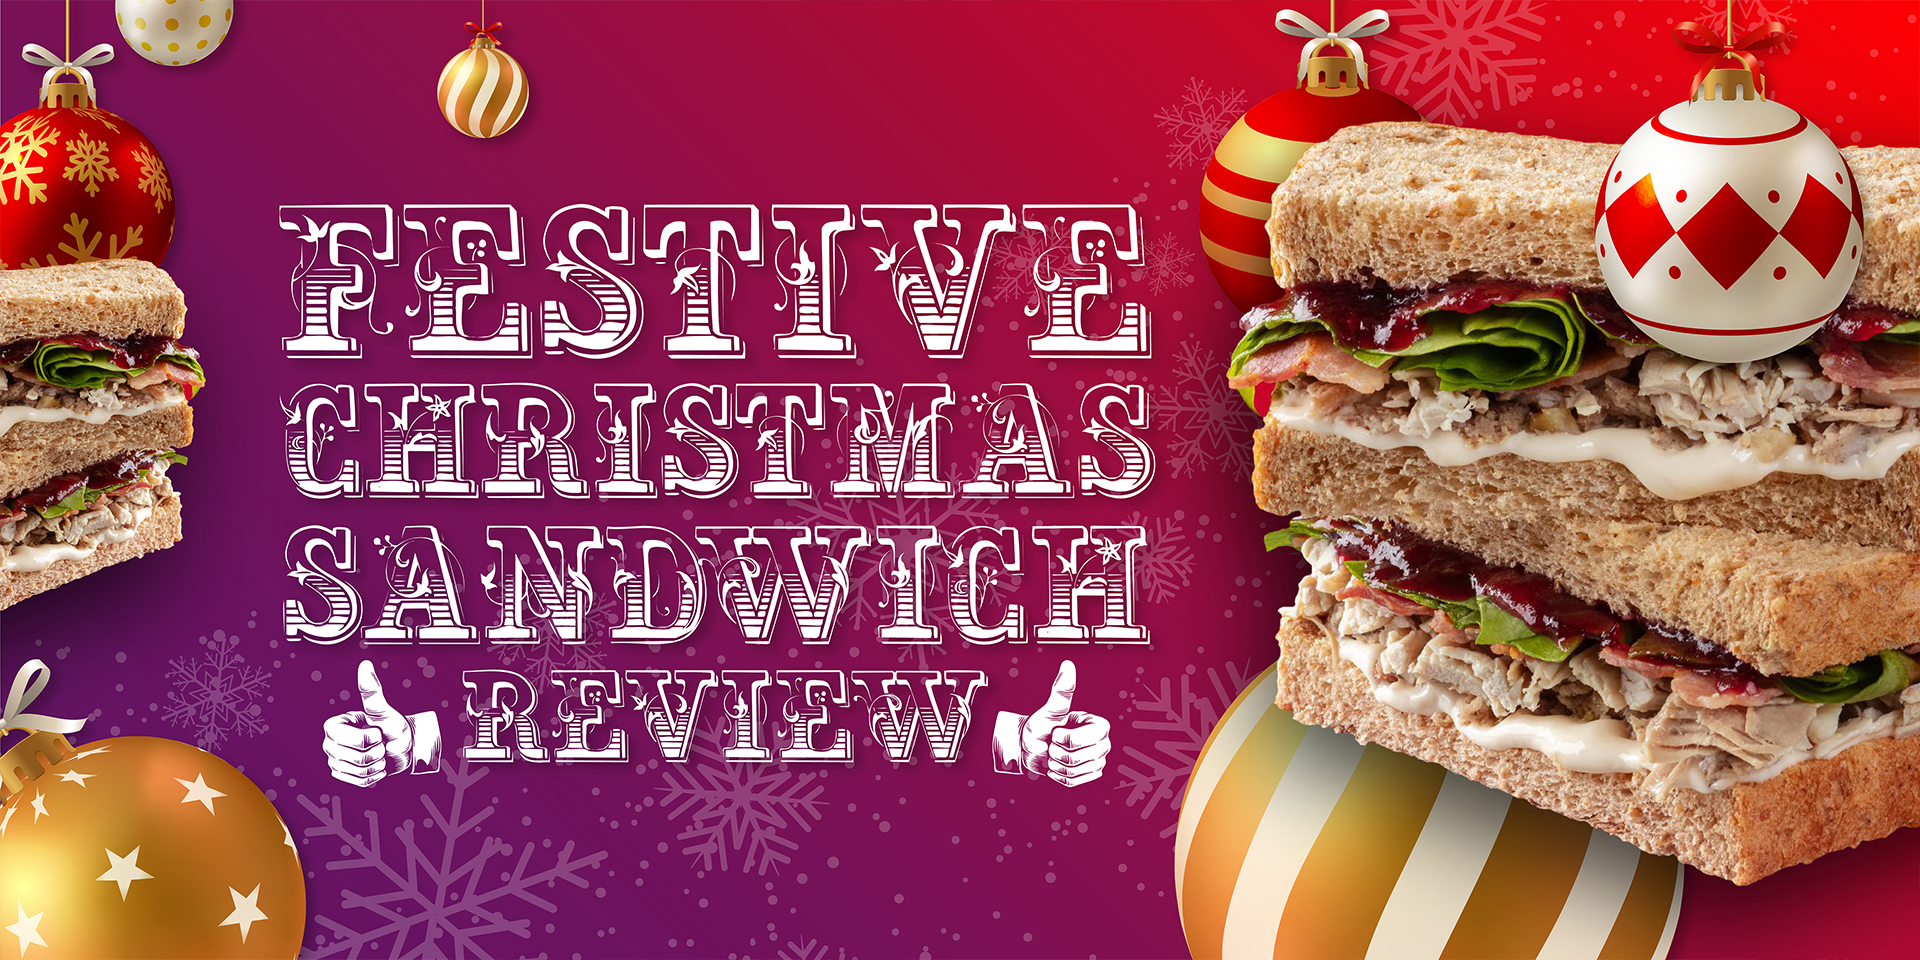 Christmas Sandwich Review – Greggs vs Marks and Spencer image